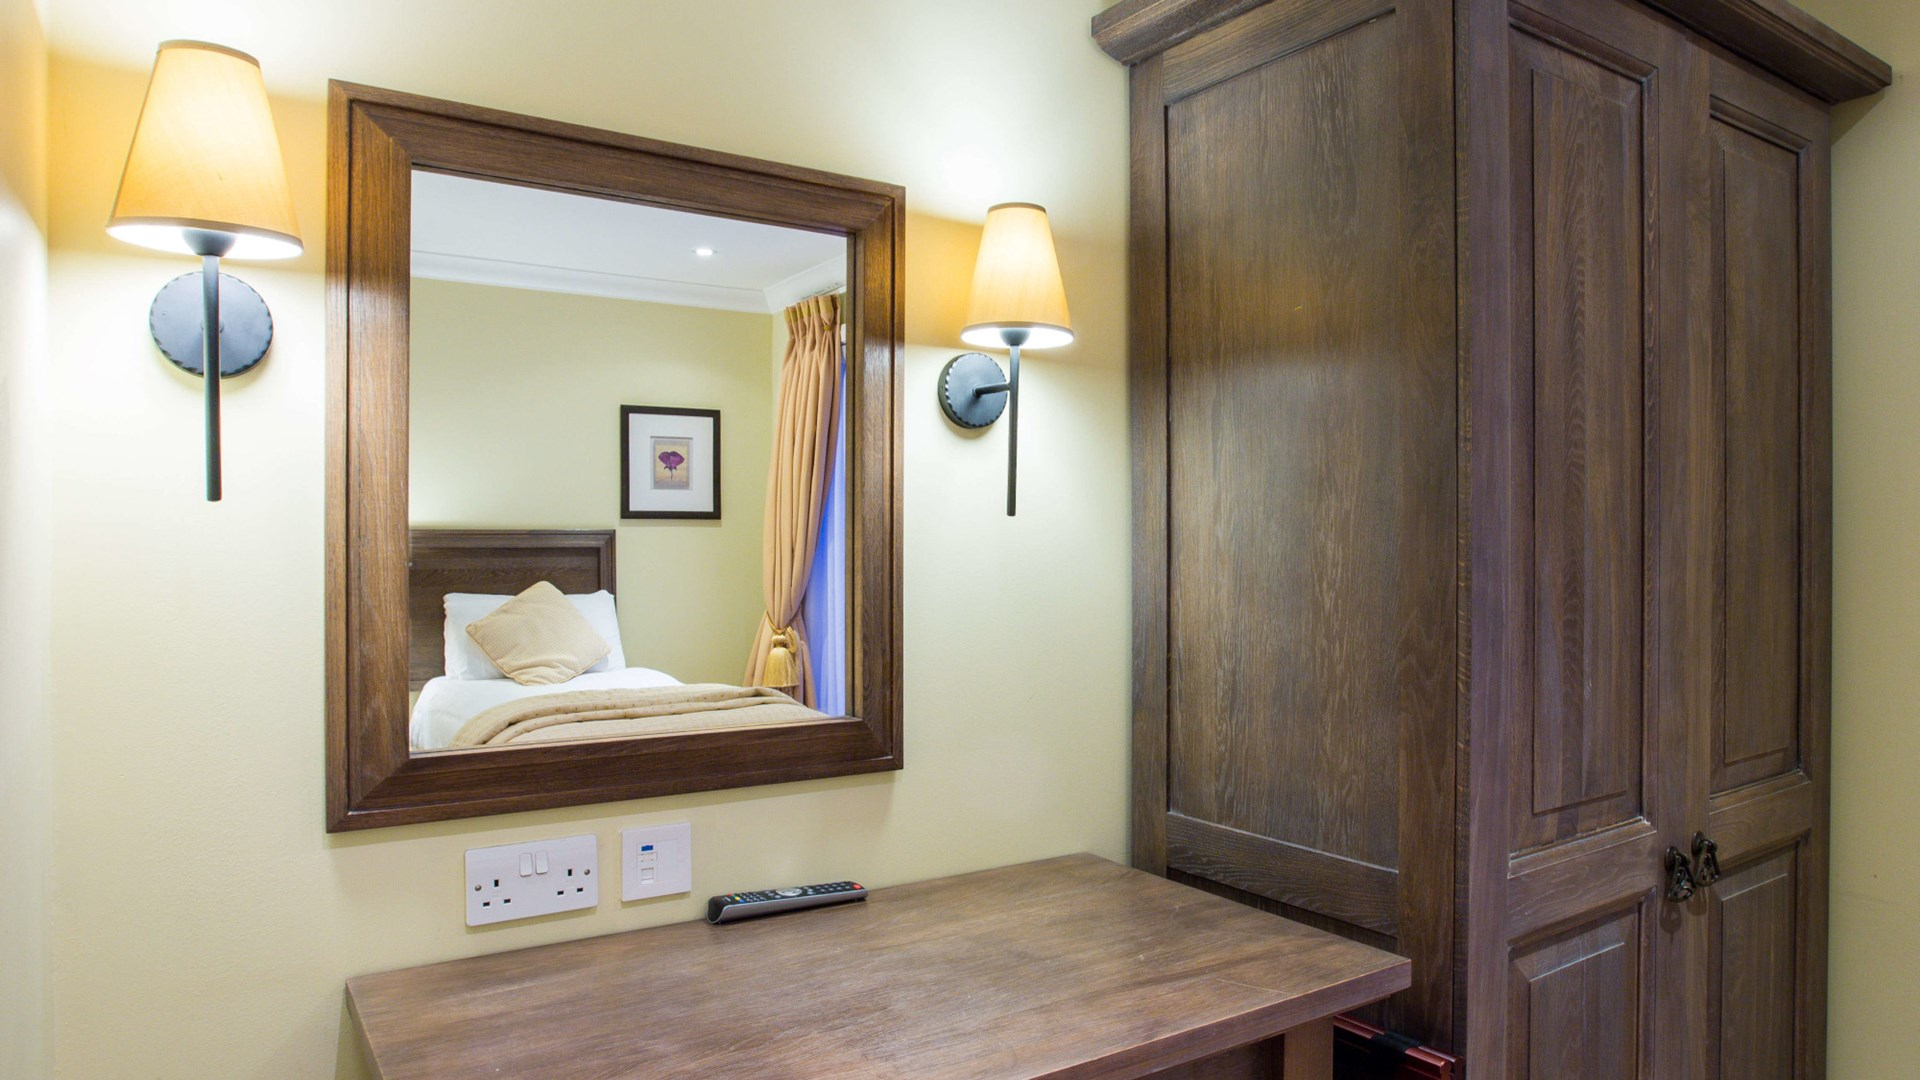 View of bed reflected in the mirror, within a four bedroom detached lodges at Cameron Club